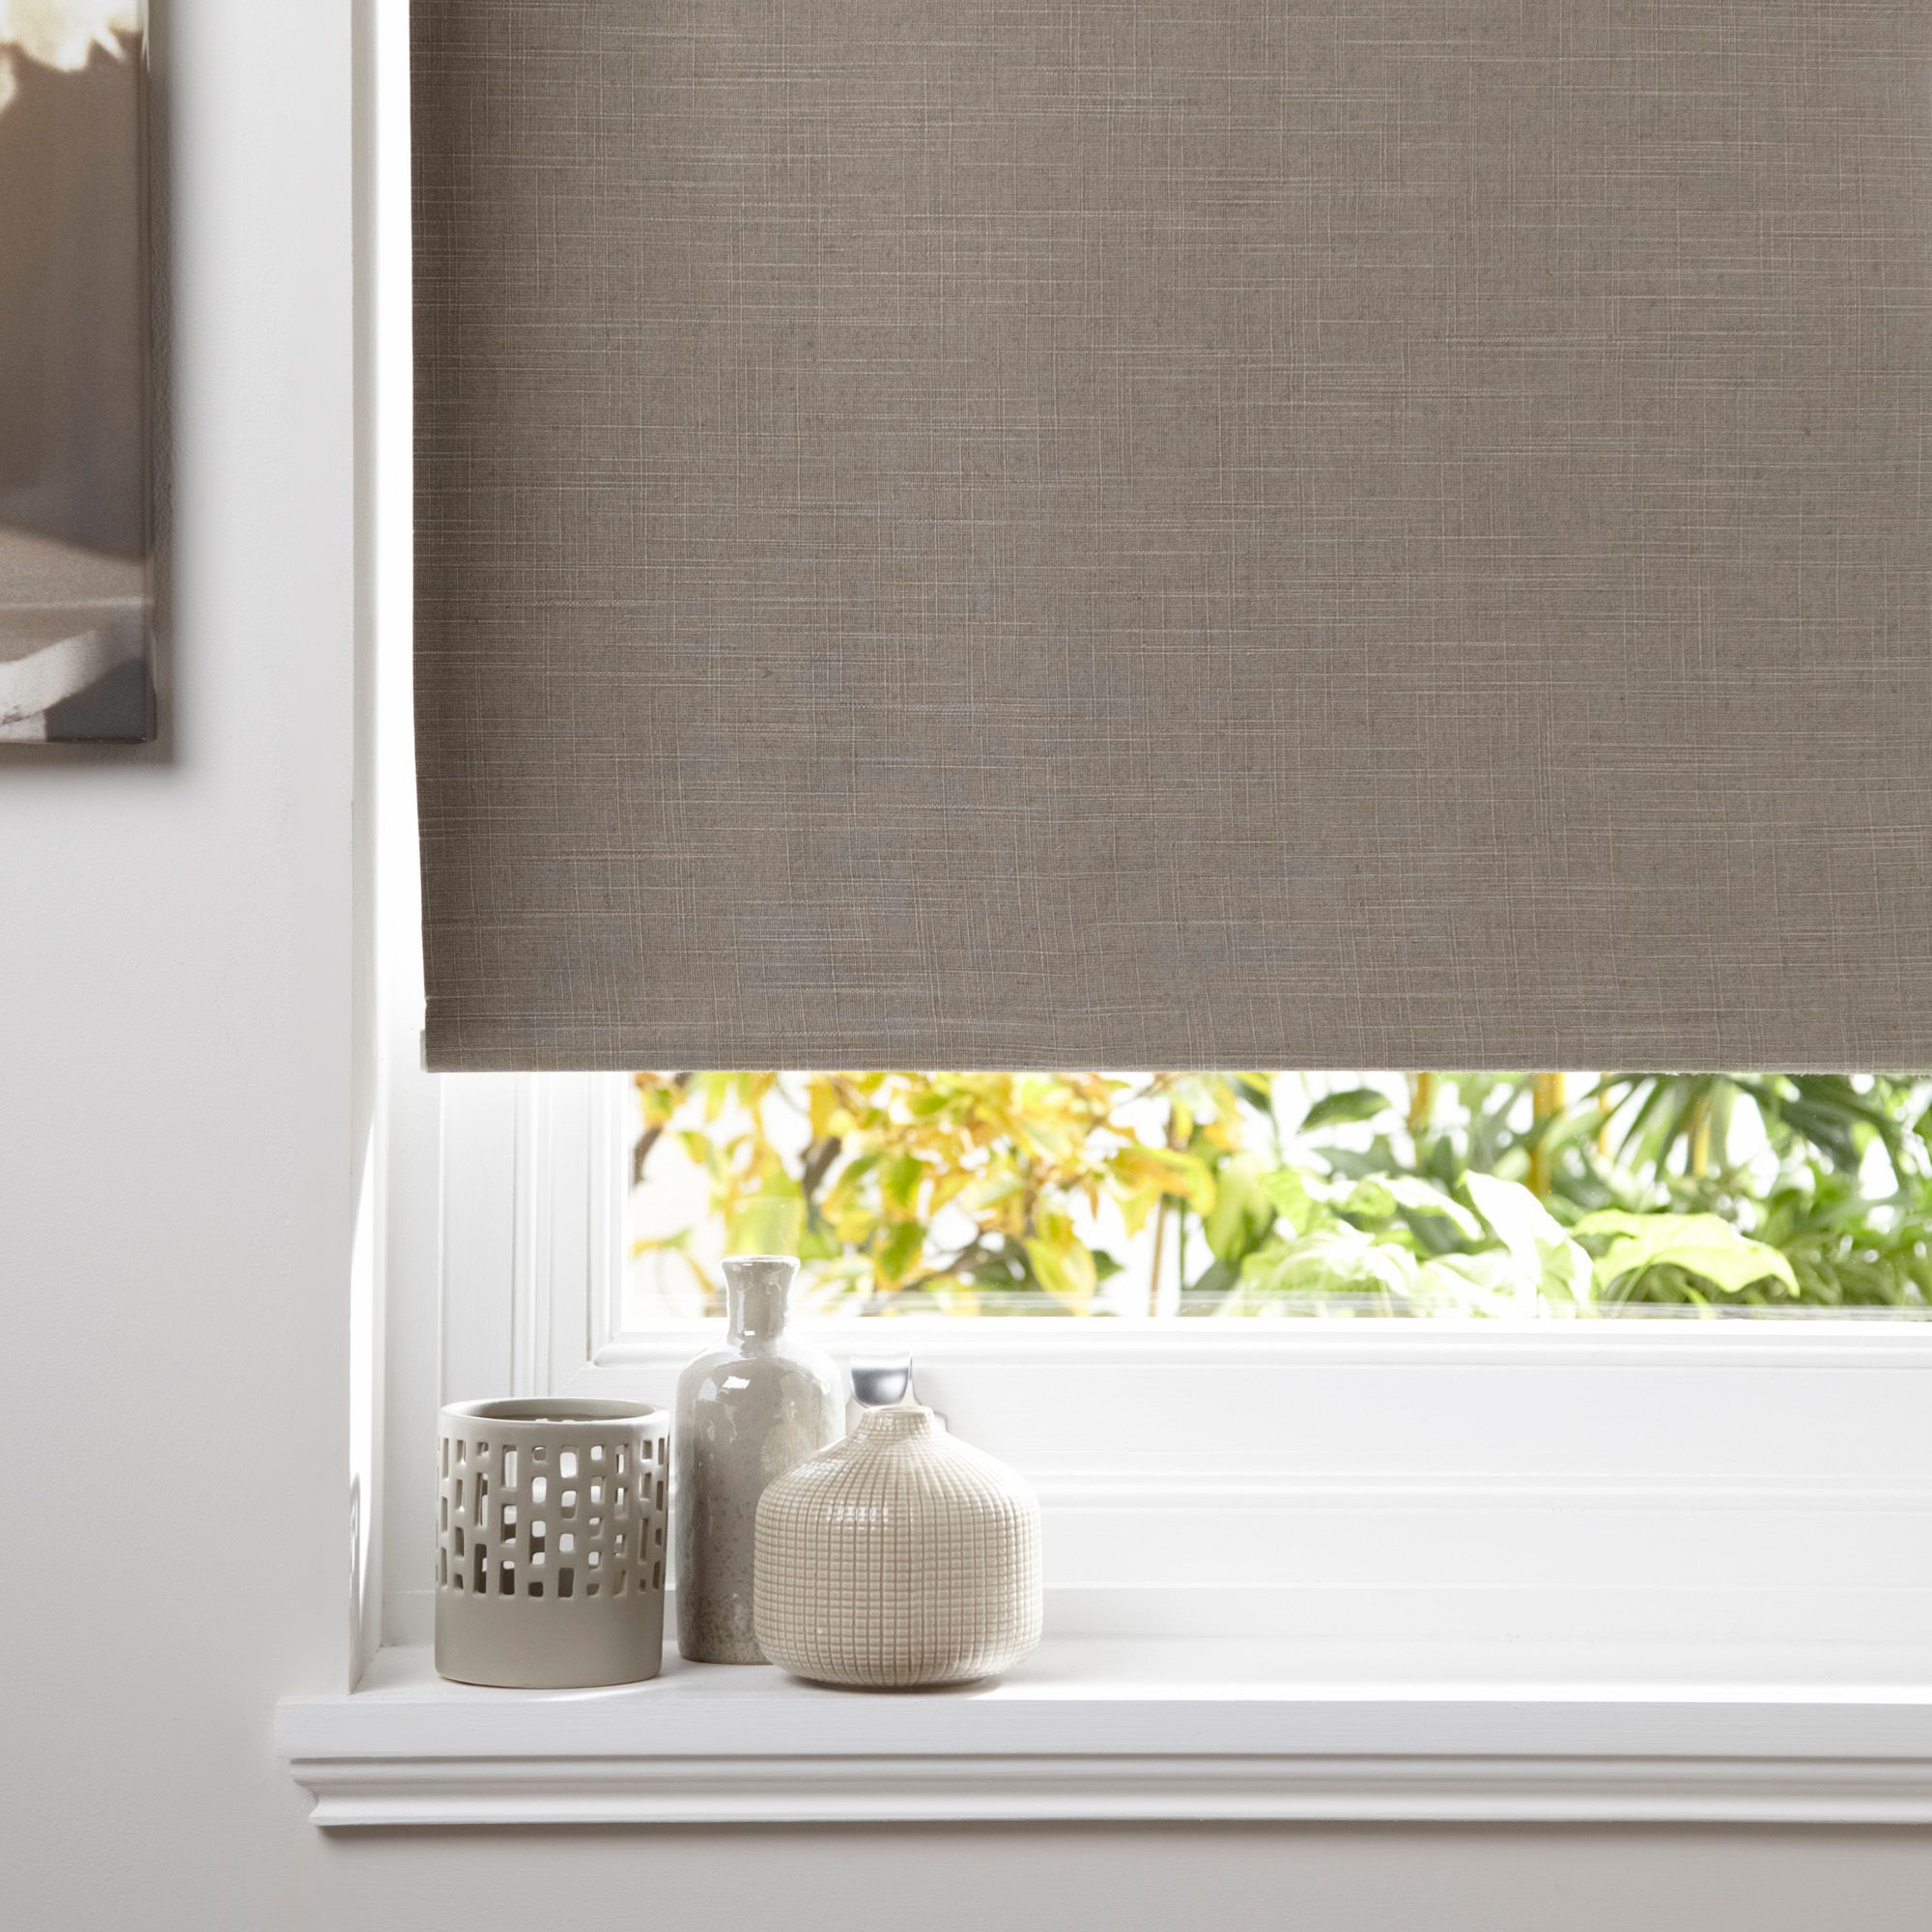 Colours Taku Corded Seine Roller Blind L 160 Cm W 120 Cm Interiors Inside Ideas Interiors design about Everything [magnanprojects.com]